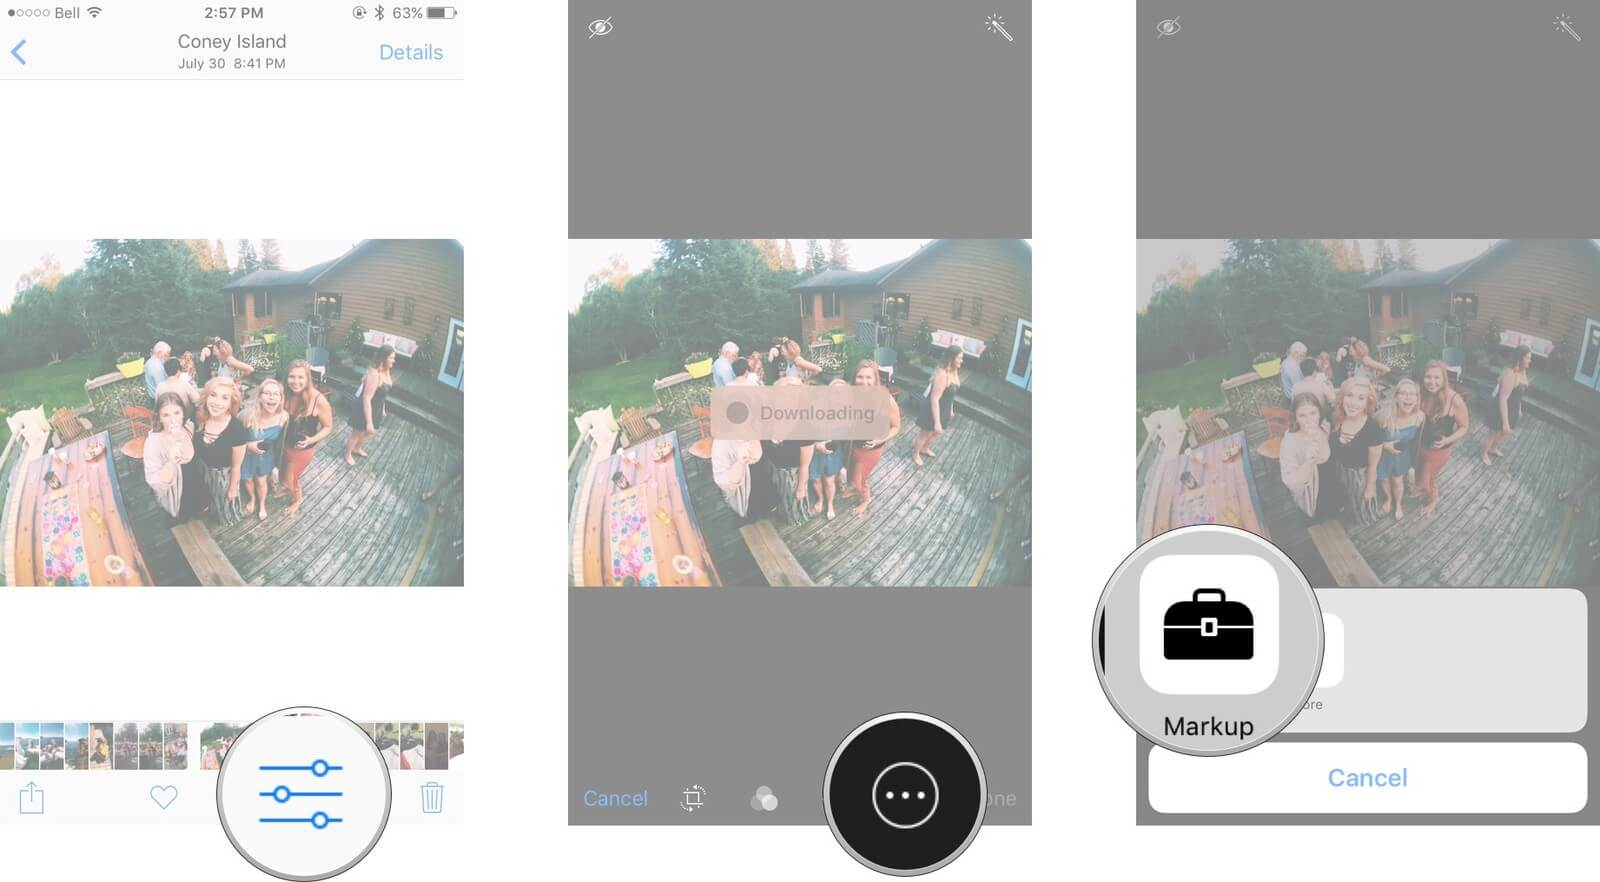 find the Markup option on your iPhone to add text to photo